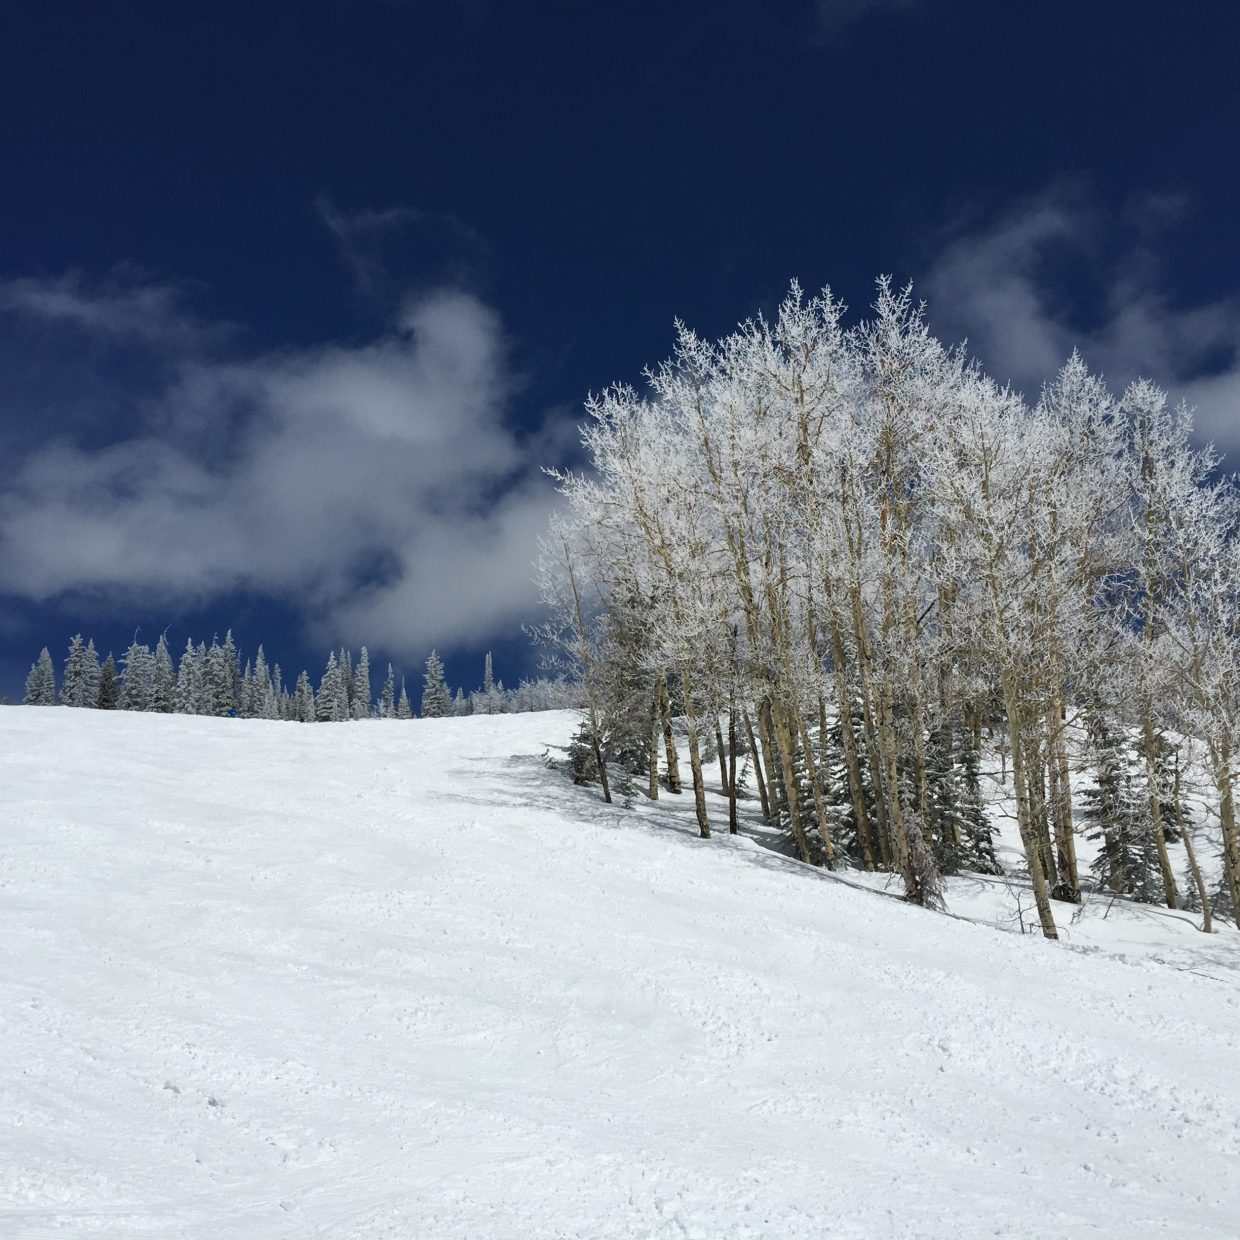 Bluebird Sky Day on the Mtn today. Submitted by: Stanzi Lucy